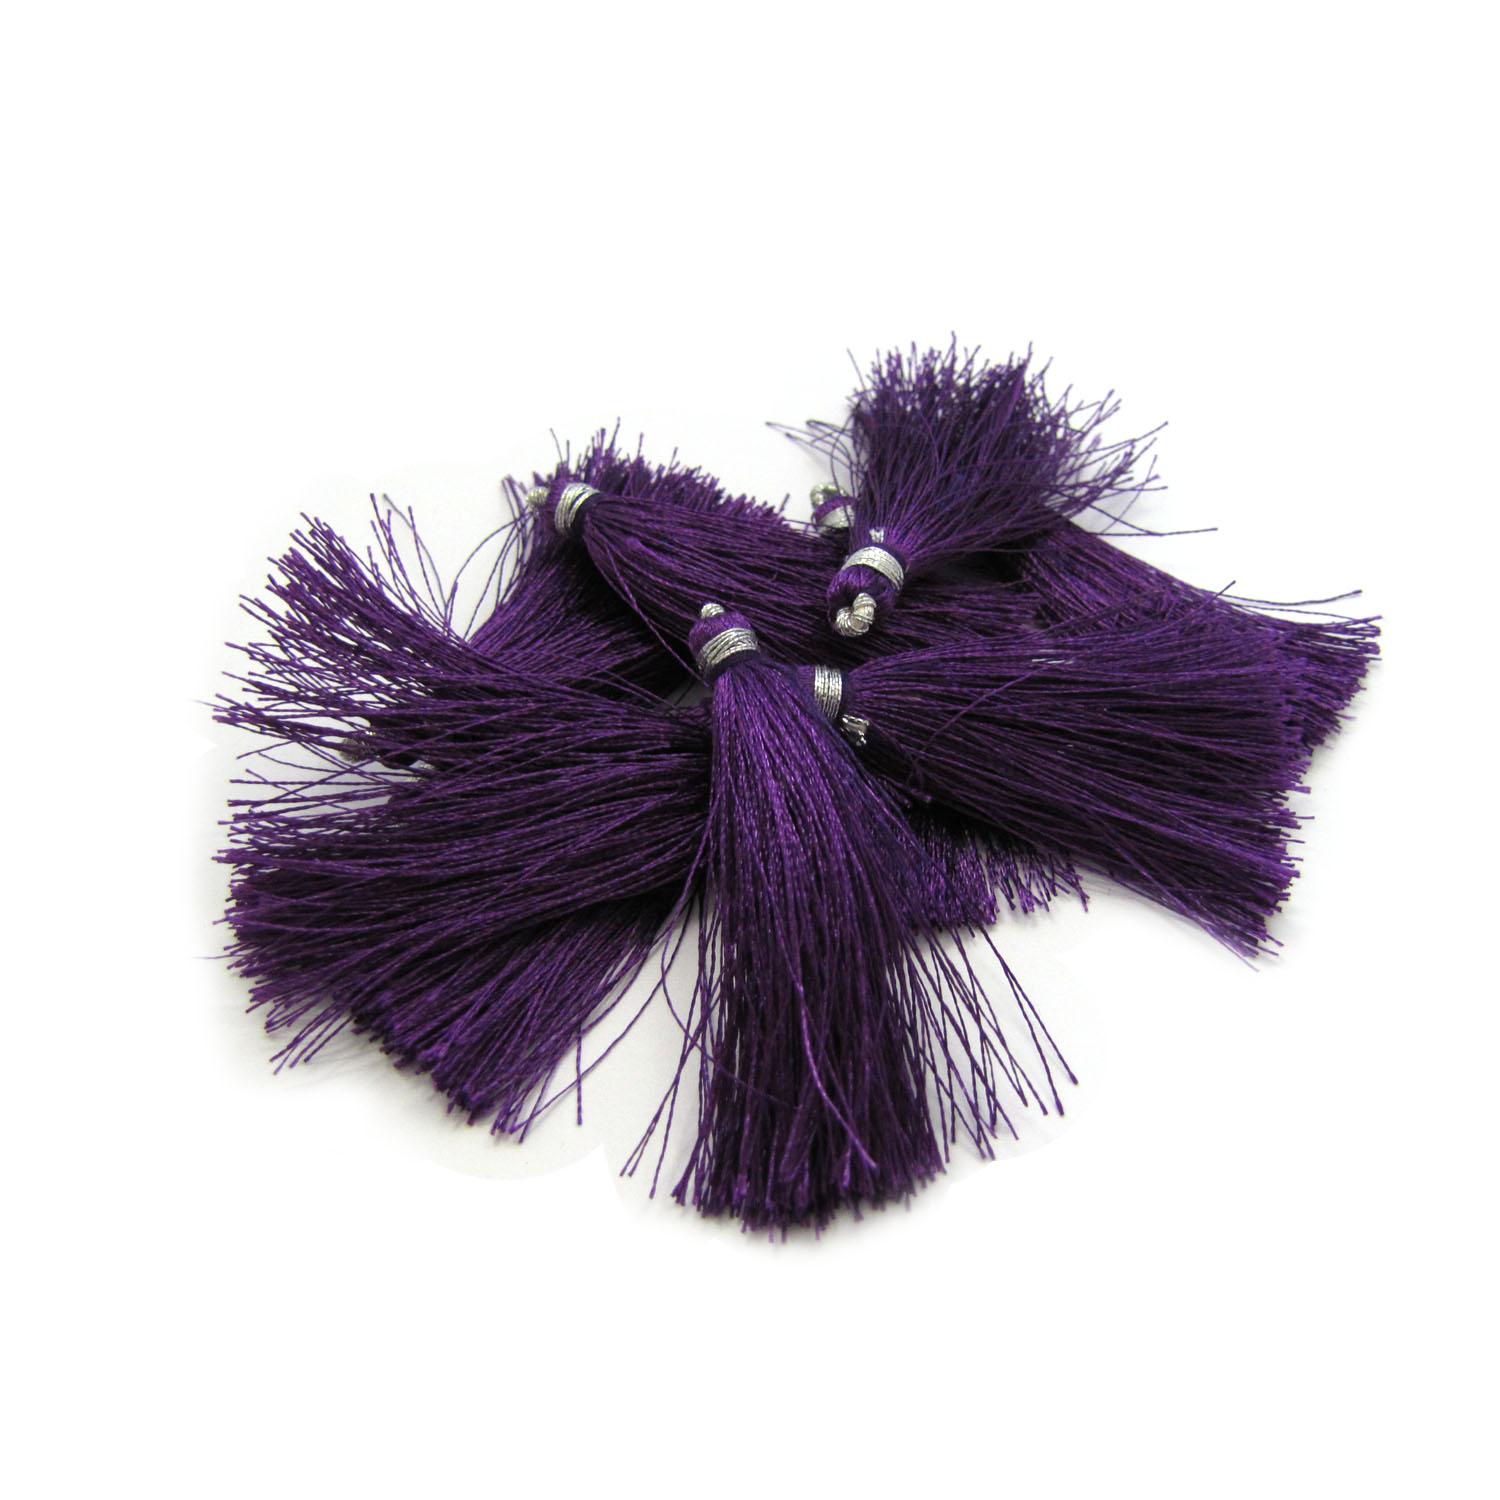 4.5cm silk tassel with silver loop - amethyst